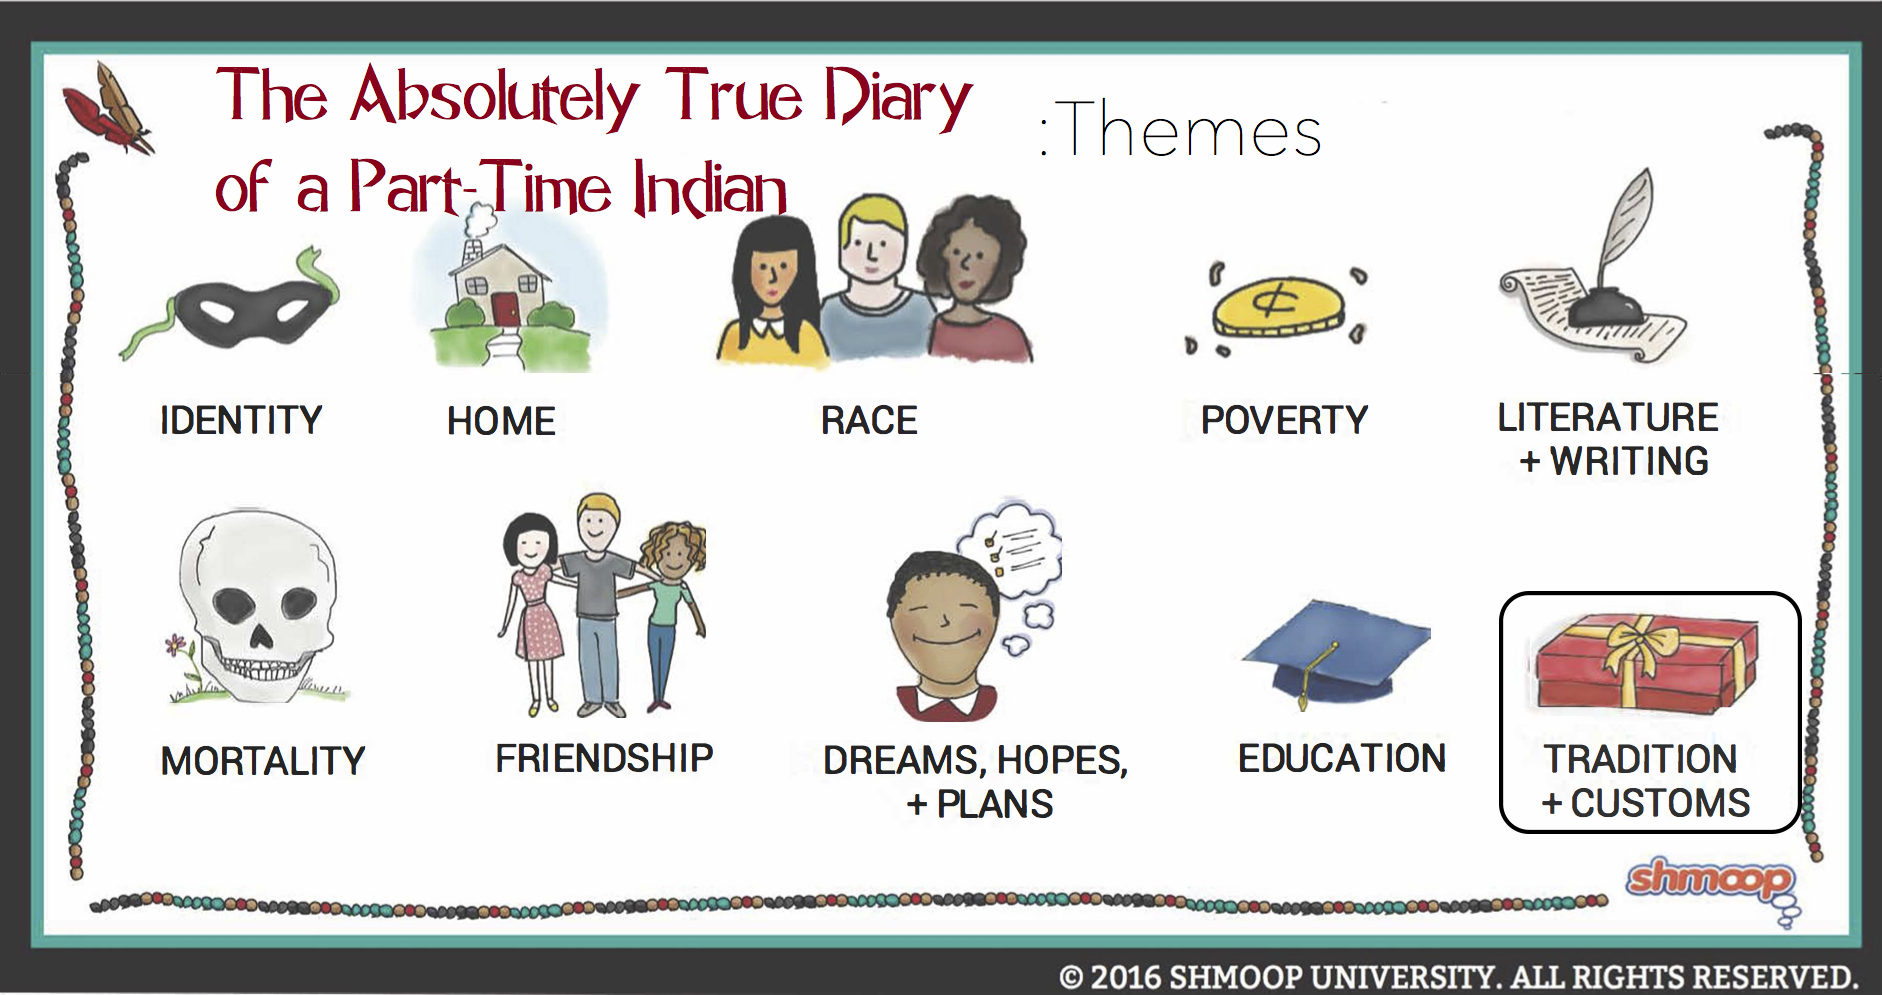 Absolutely True Diary Of A Part Time Indian Quotes Stunning The Absolutely True Diary Of A Parttime Indian Theme Of Tradition .